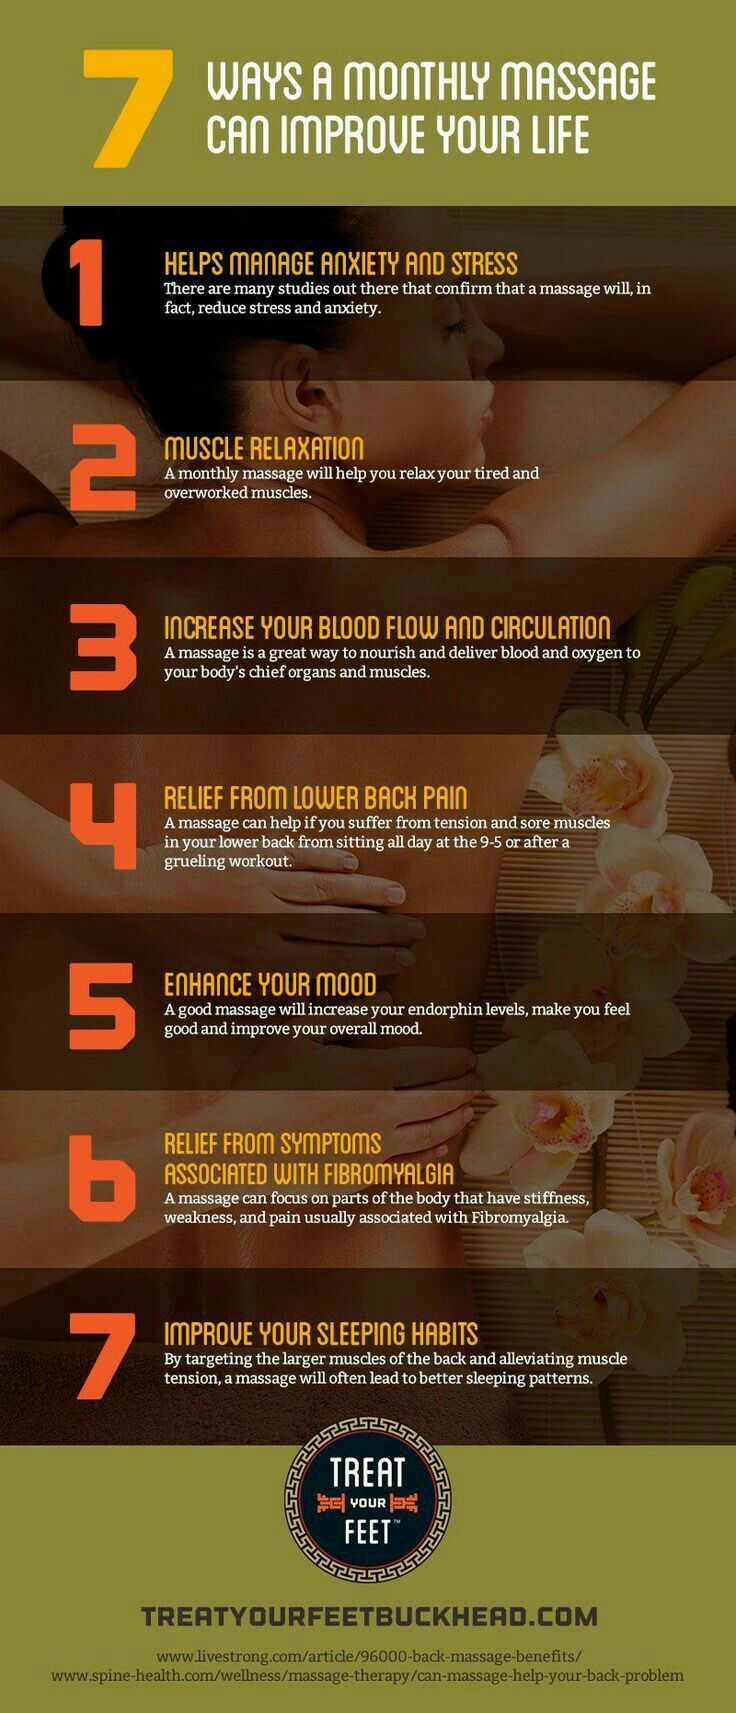 7 Ways a Monthly Massage Can Improve Your Life #anxietyproblems #stress #pain #moodchanger #sleeptherapy www.sportsmassageinpensacolafl.com